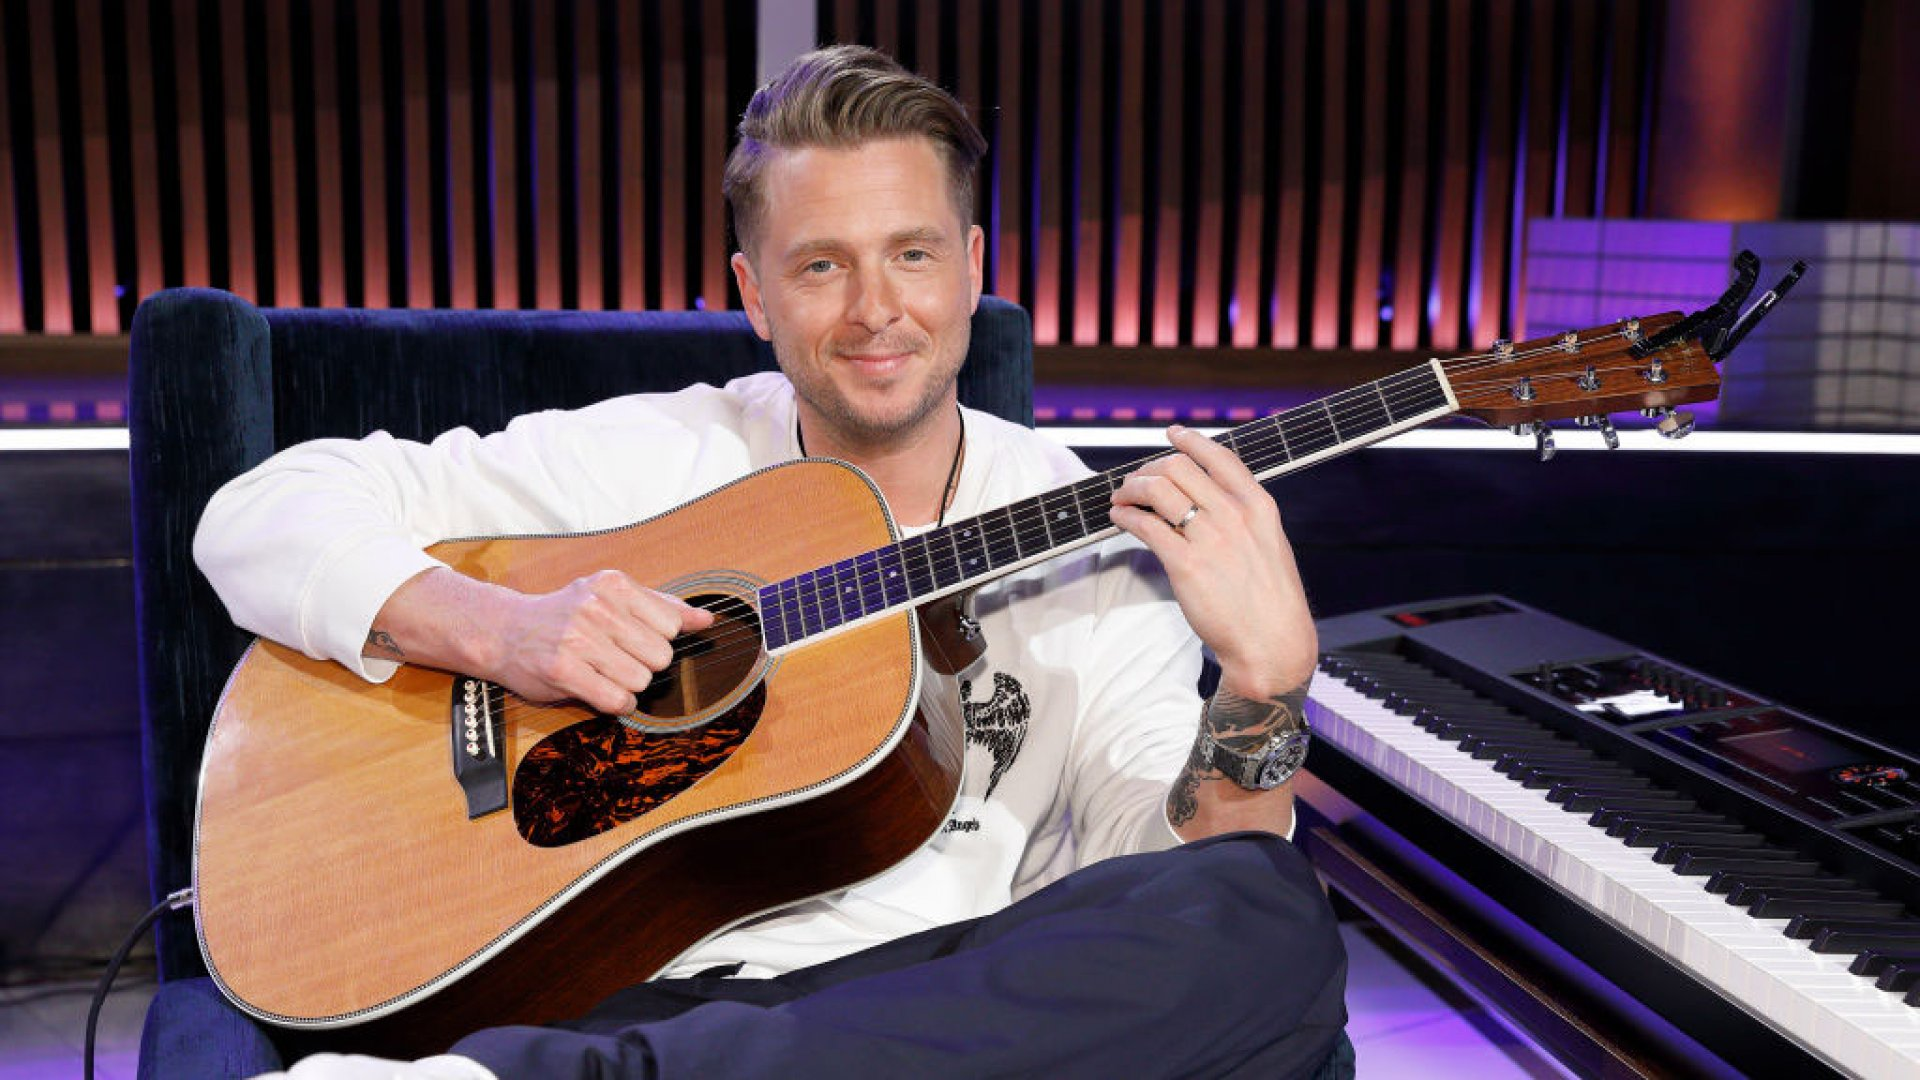 5 Things I Learned From Ryan Tedder